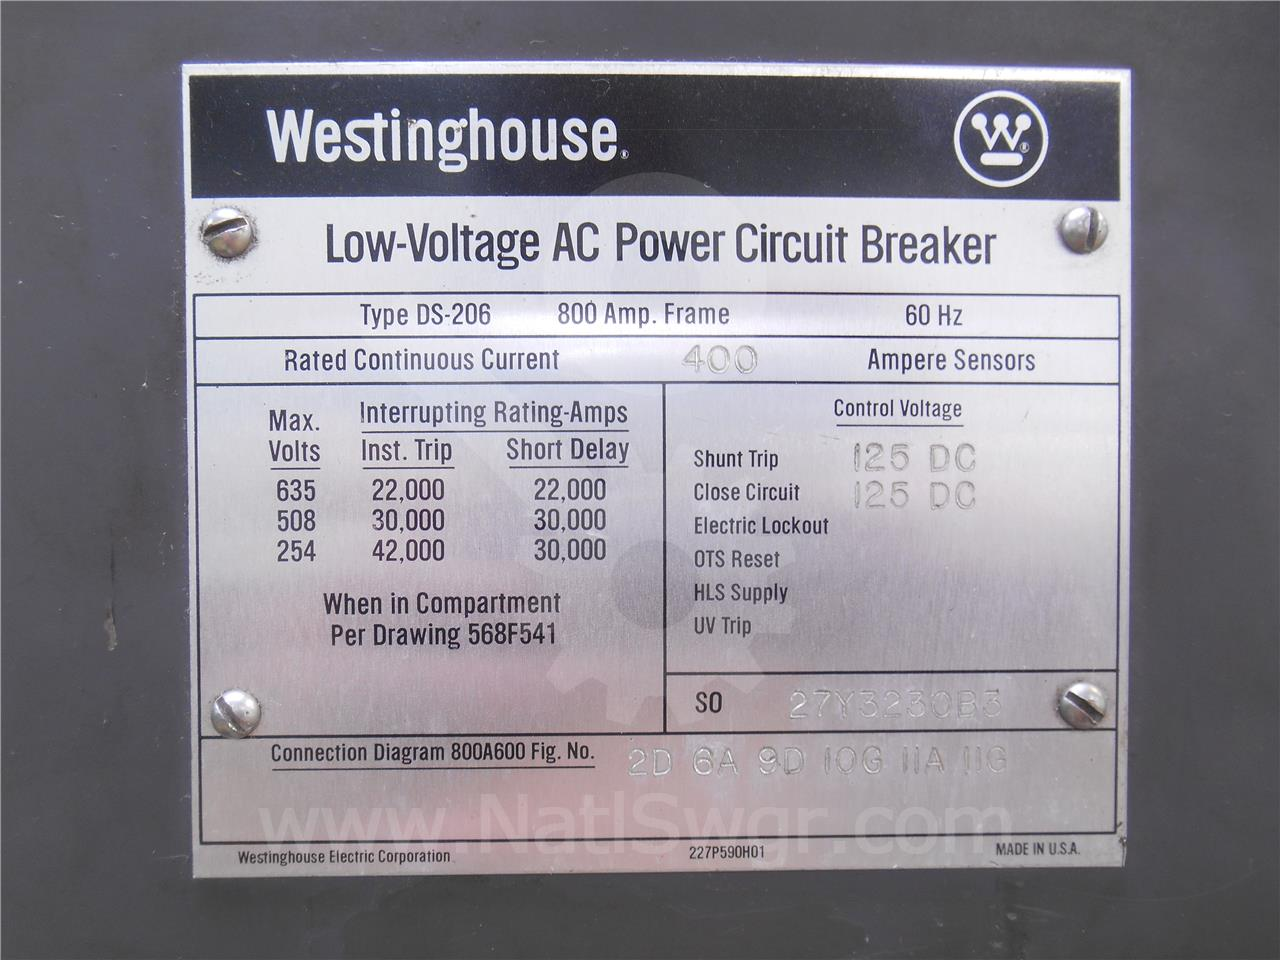 Westinghouse Cutler Hammer 800a Wh Ds 206 Eo Do Eaton Shunt Trip Breaker Wiring Diagram With Push On